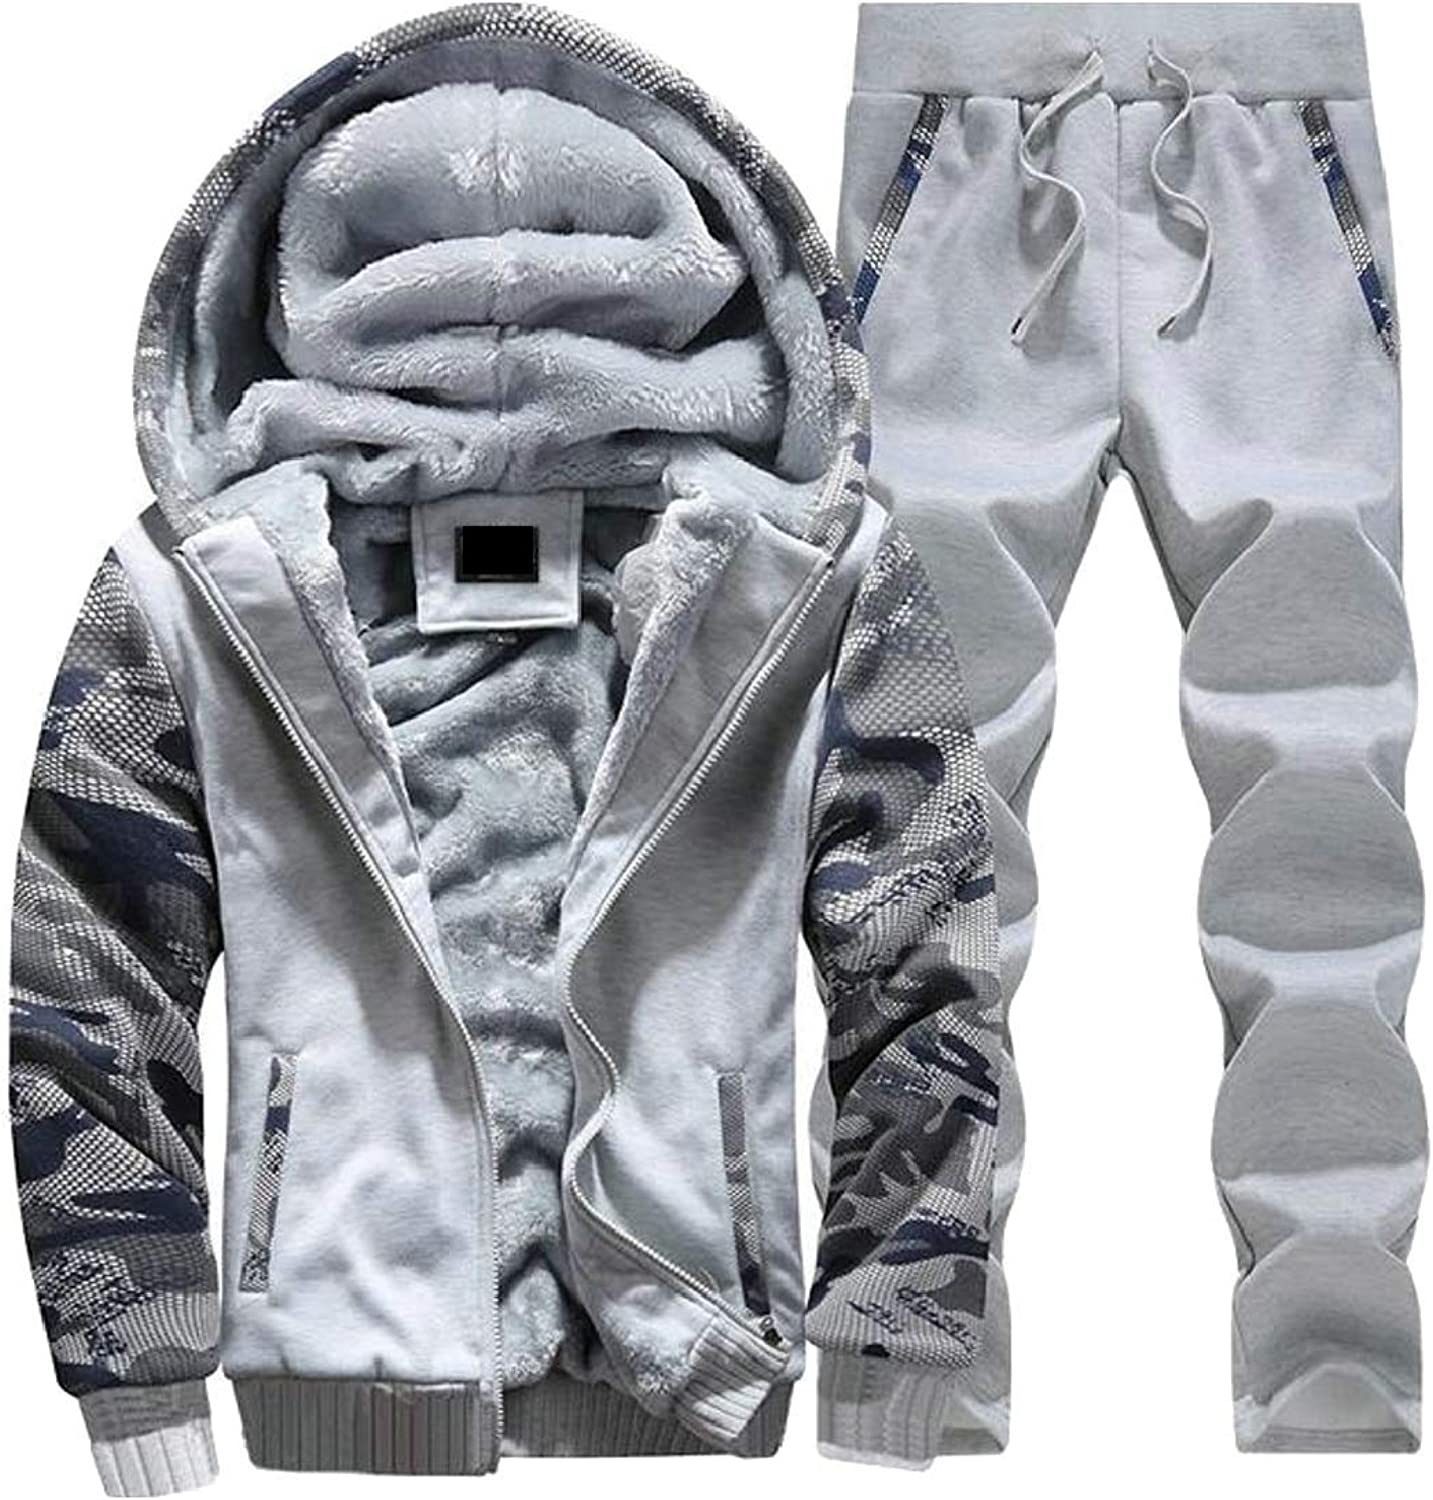 XQS Men Winter 2 Piece Outfits Fleece Lined Hoodie Pants Running Tracksuits